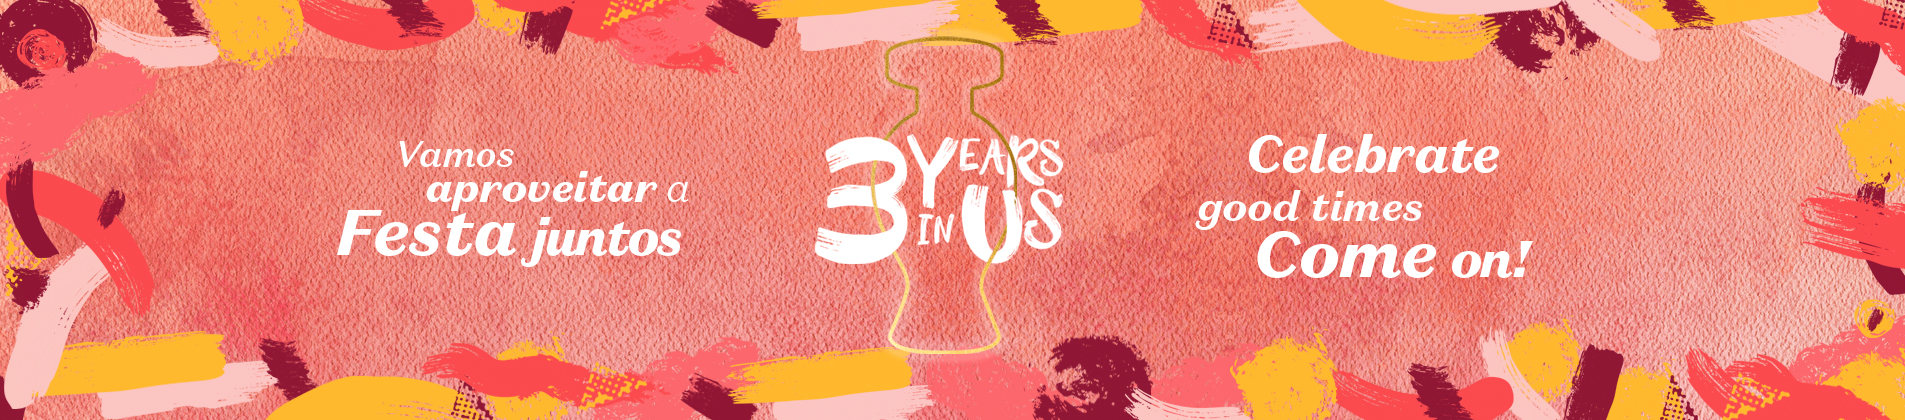 3 years in US